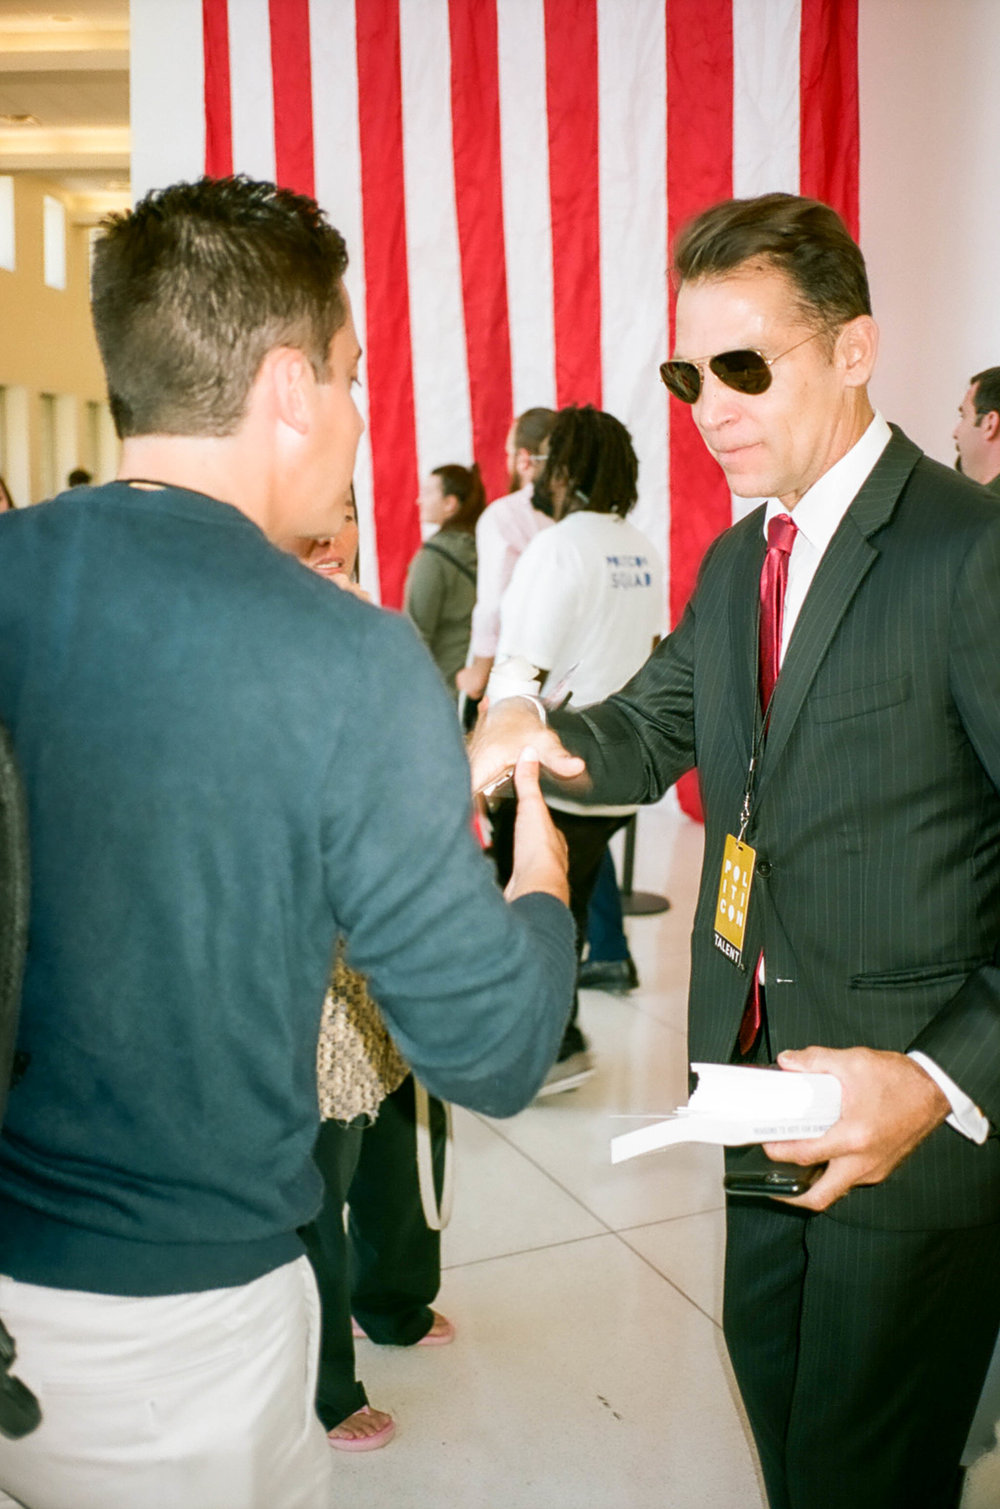 Politicon_July2017_DavidVassalli_Selects-78.jpg